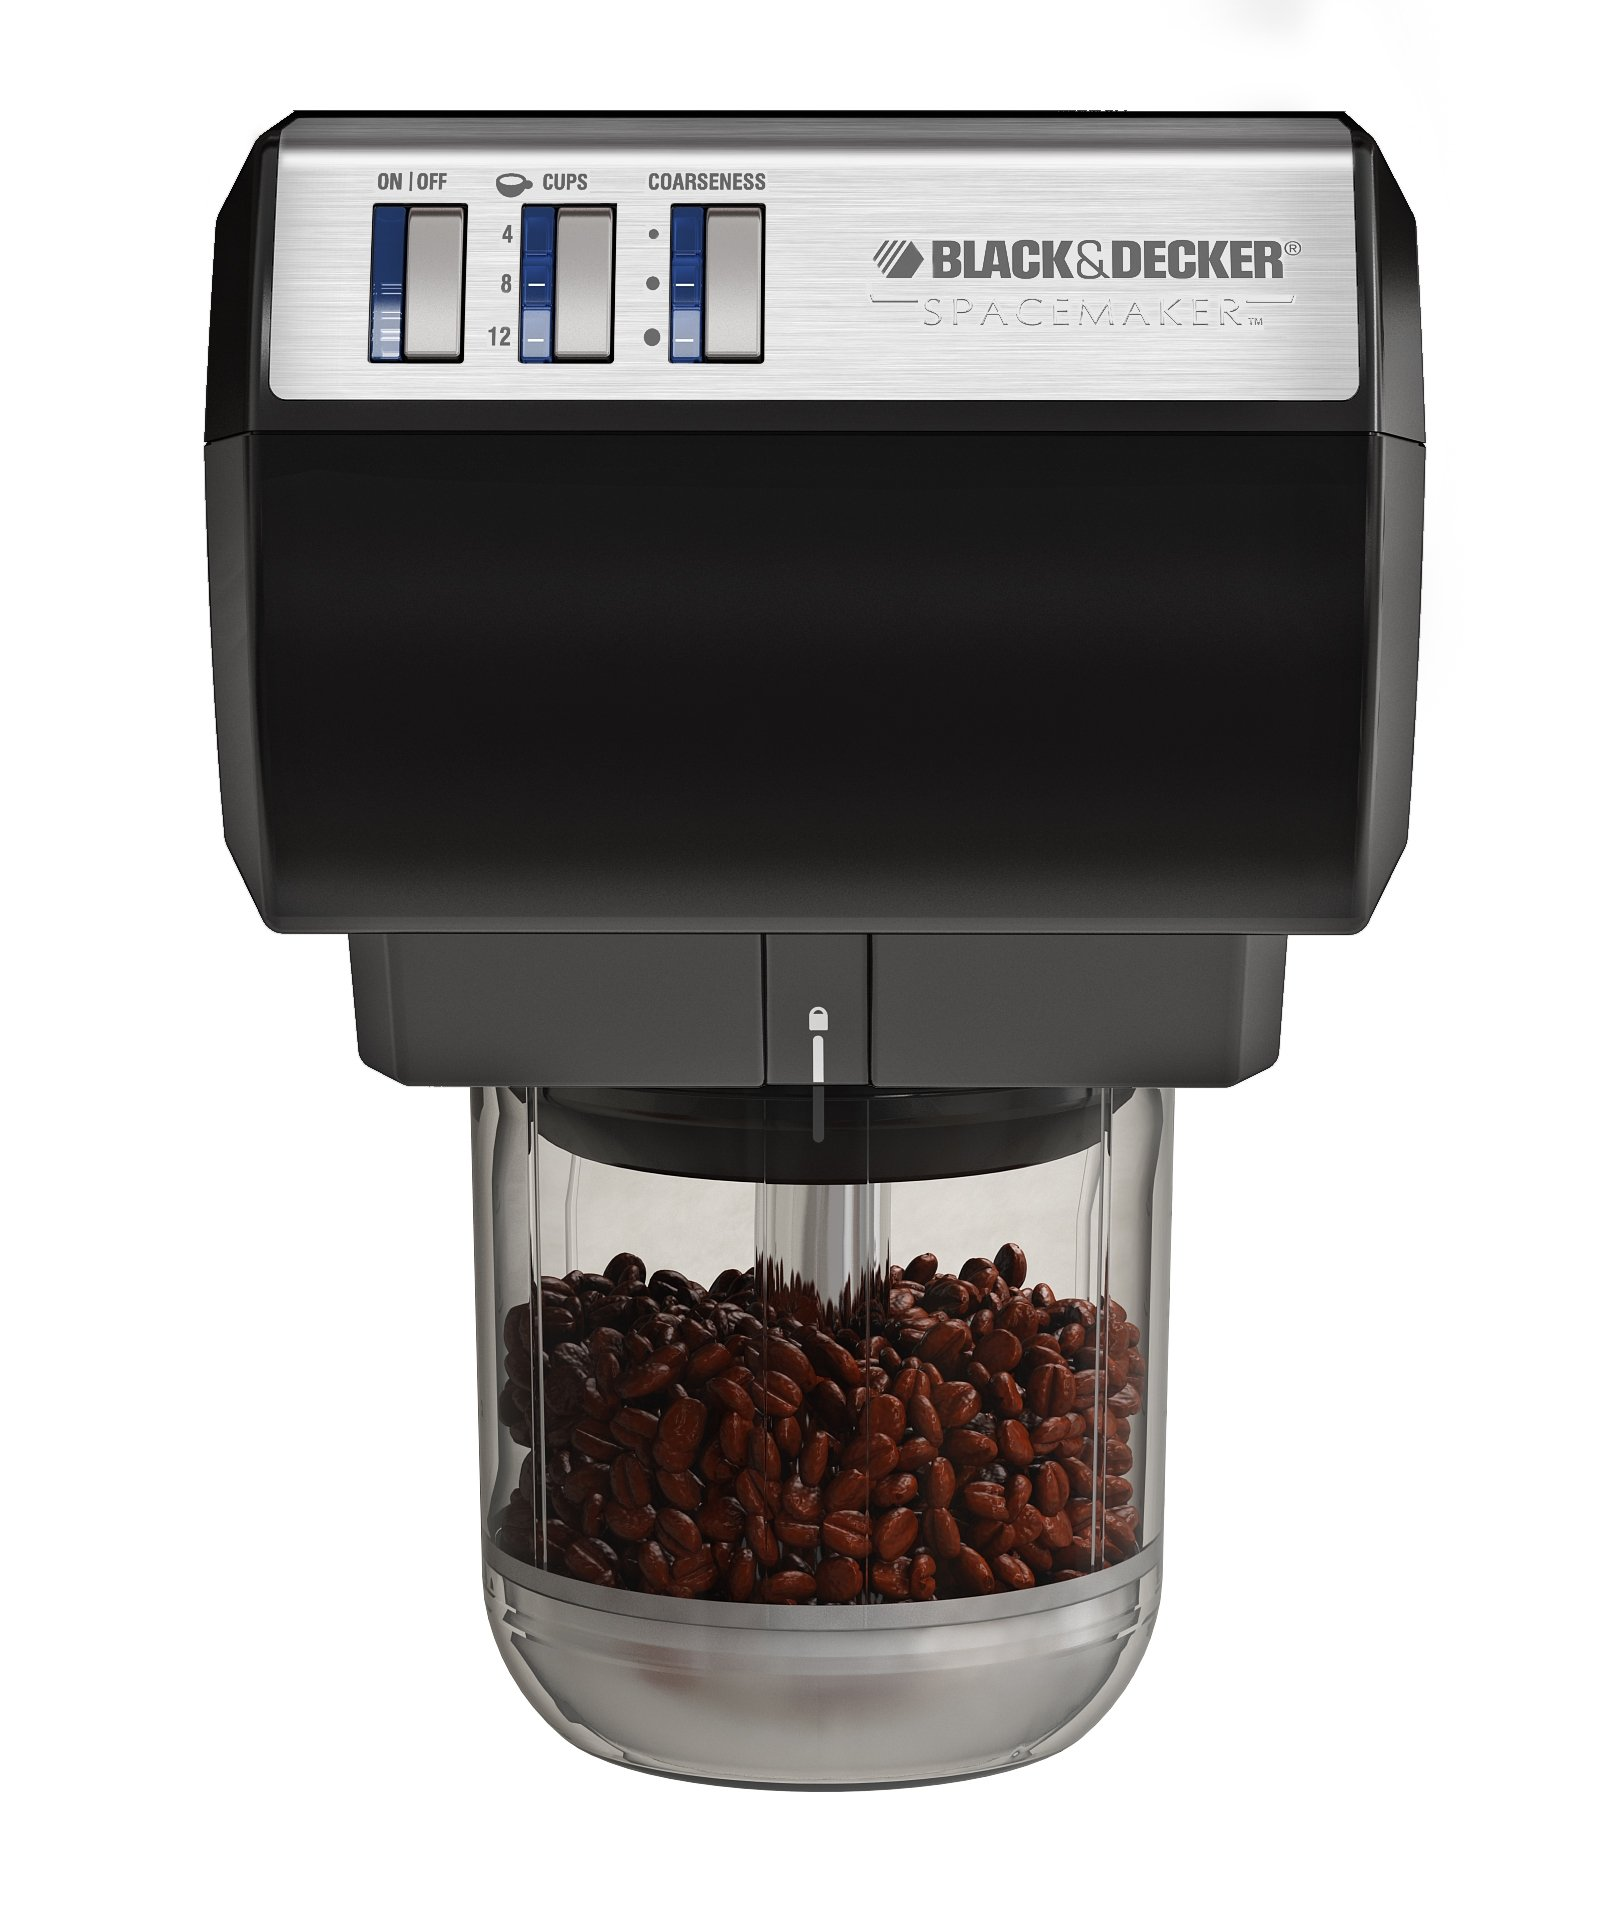 Black & Decker CG700 Spacemaker Coffee Grinder & Chopper by Black & Decker